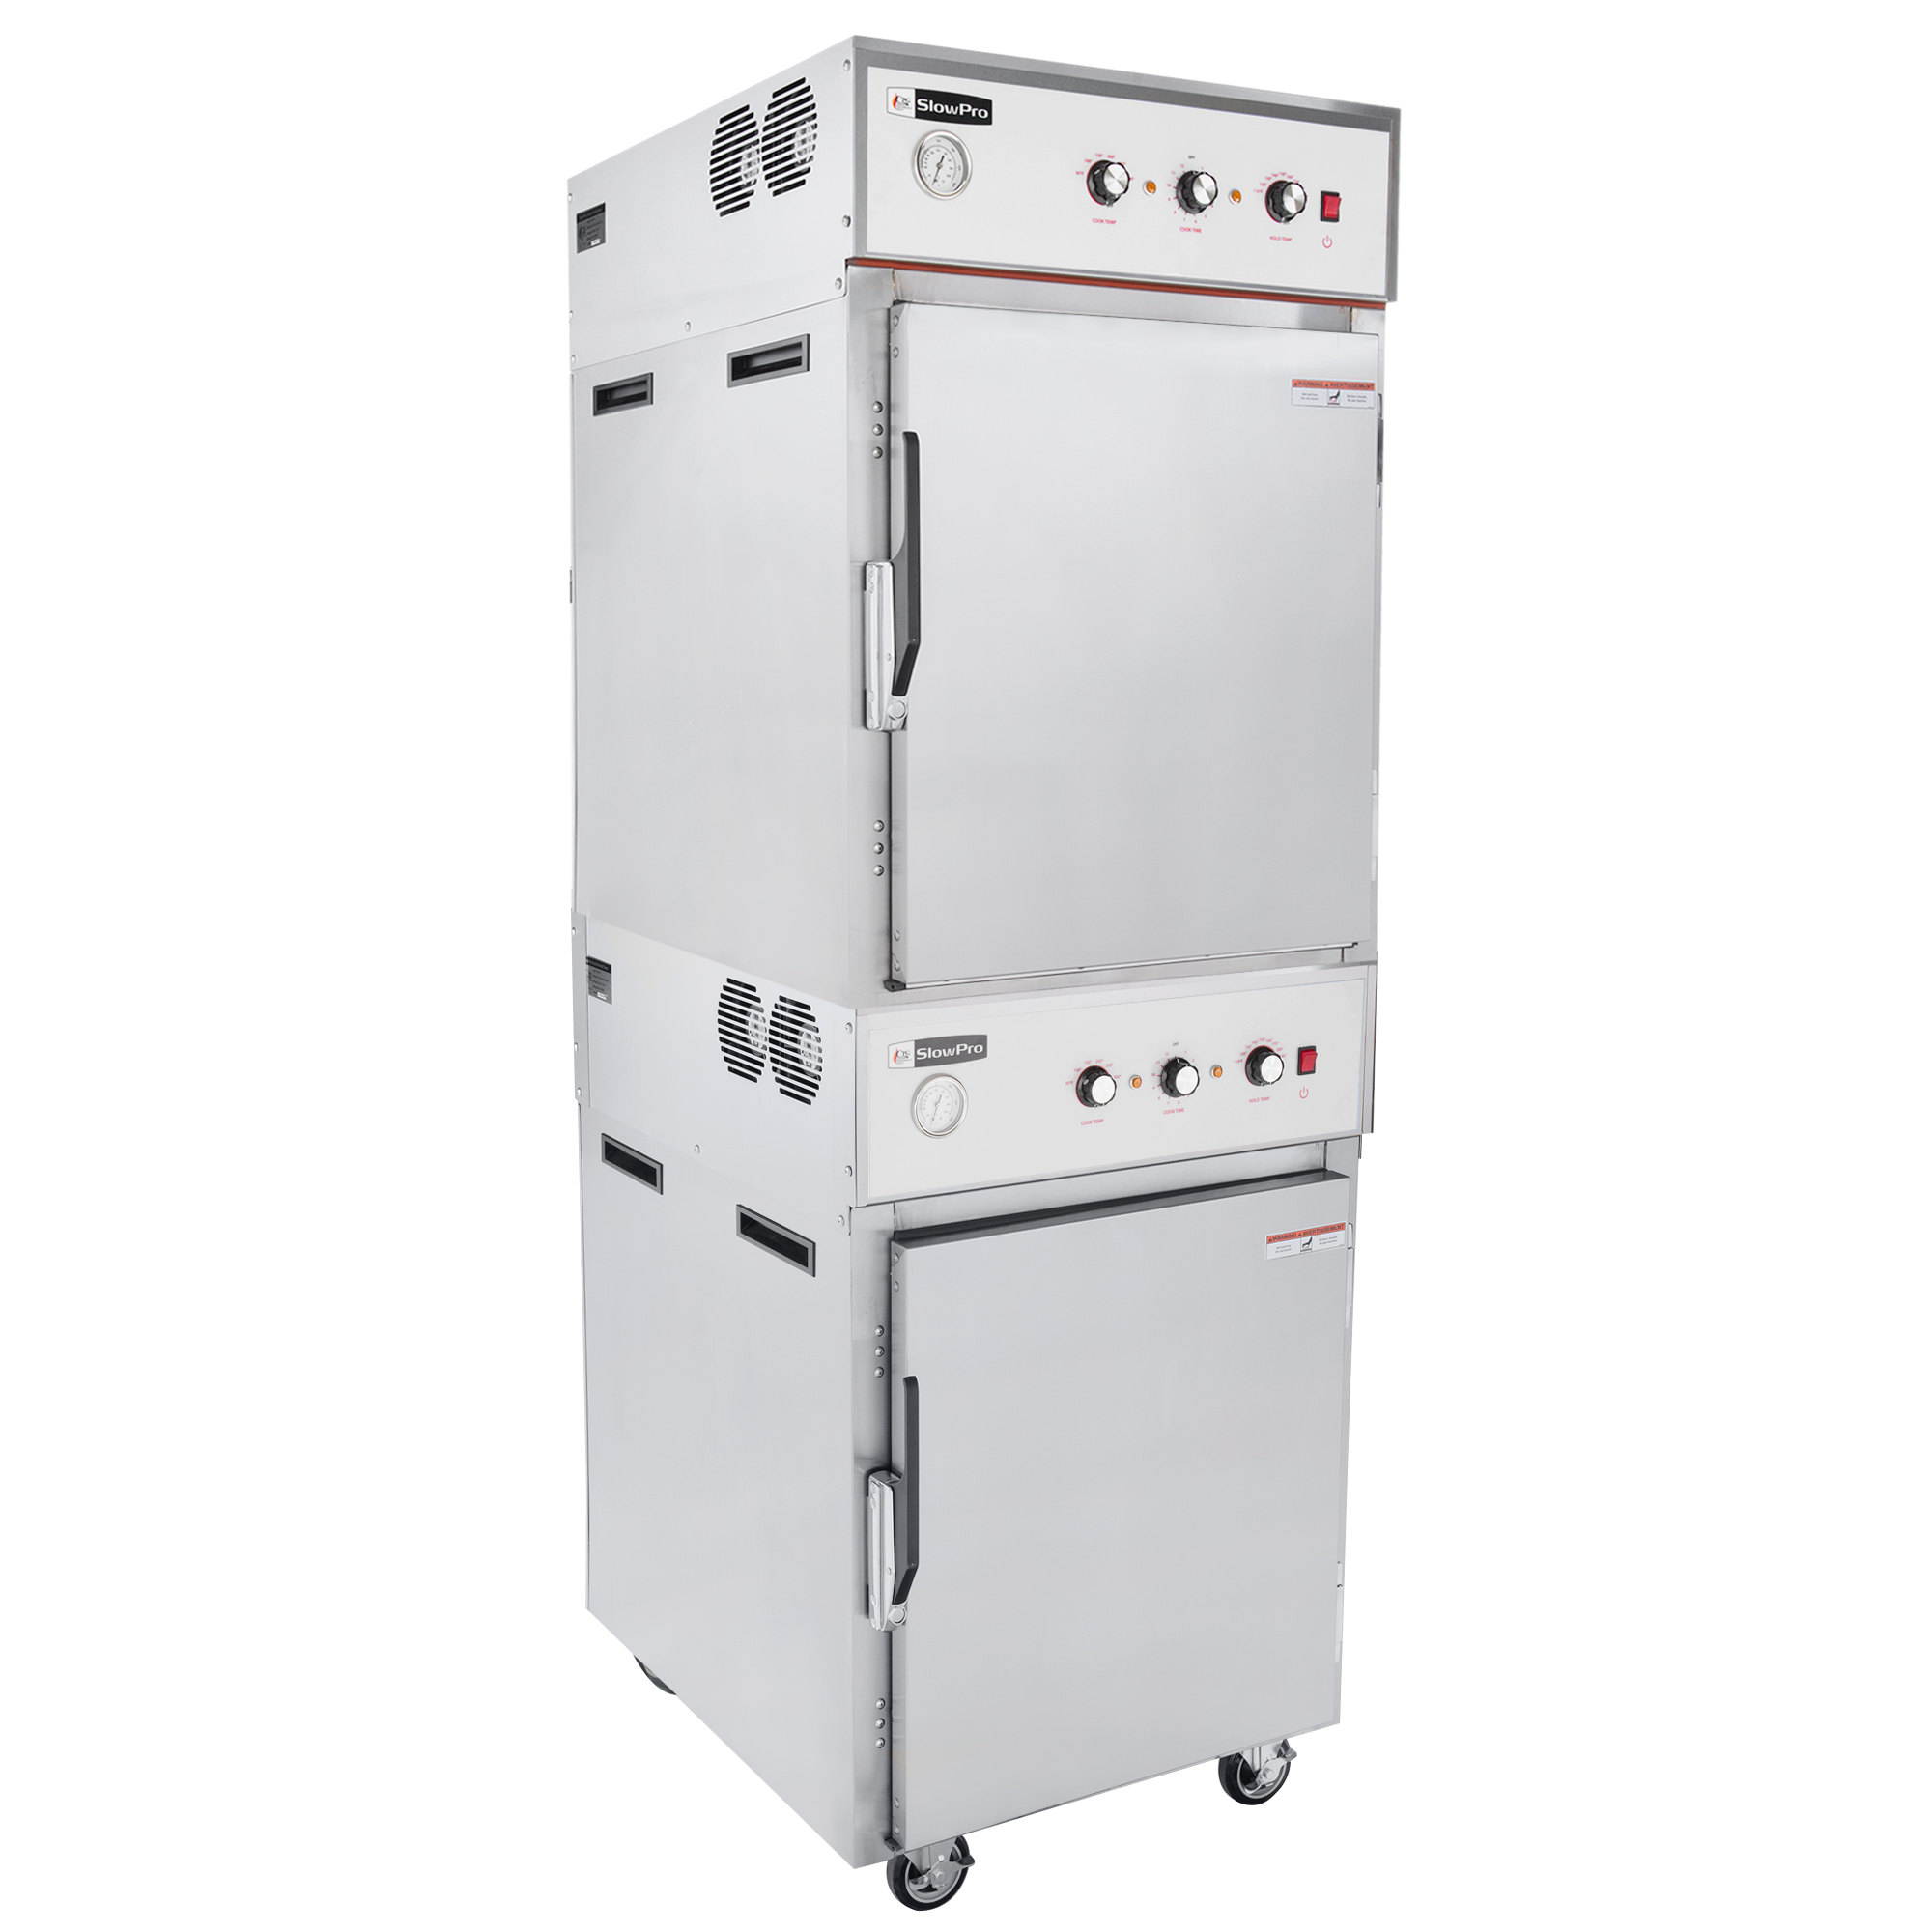 Cooking Performance Group CHSP2 SlowPro stacked cook and hold oven